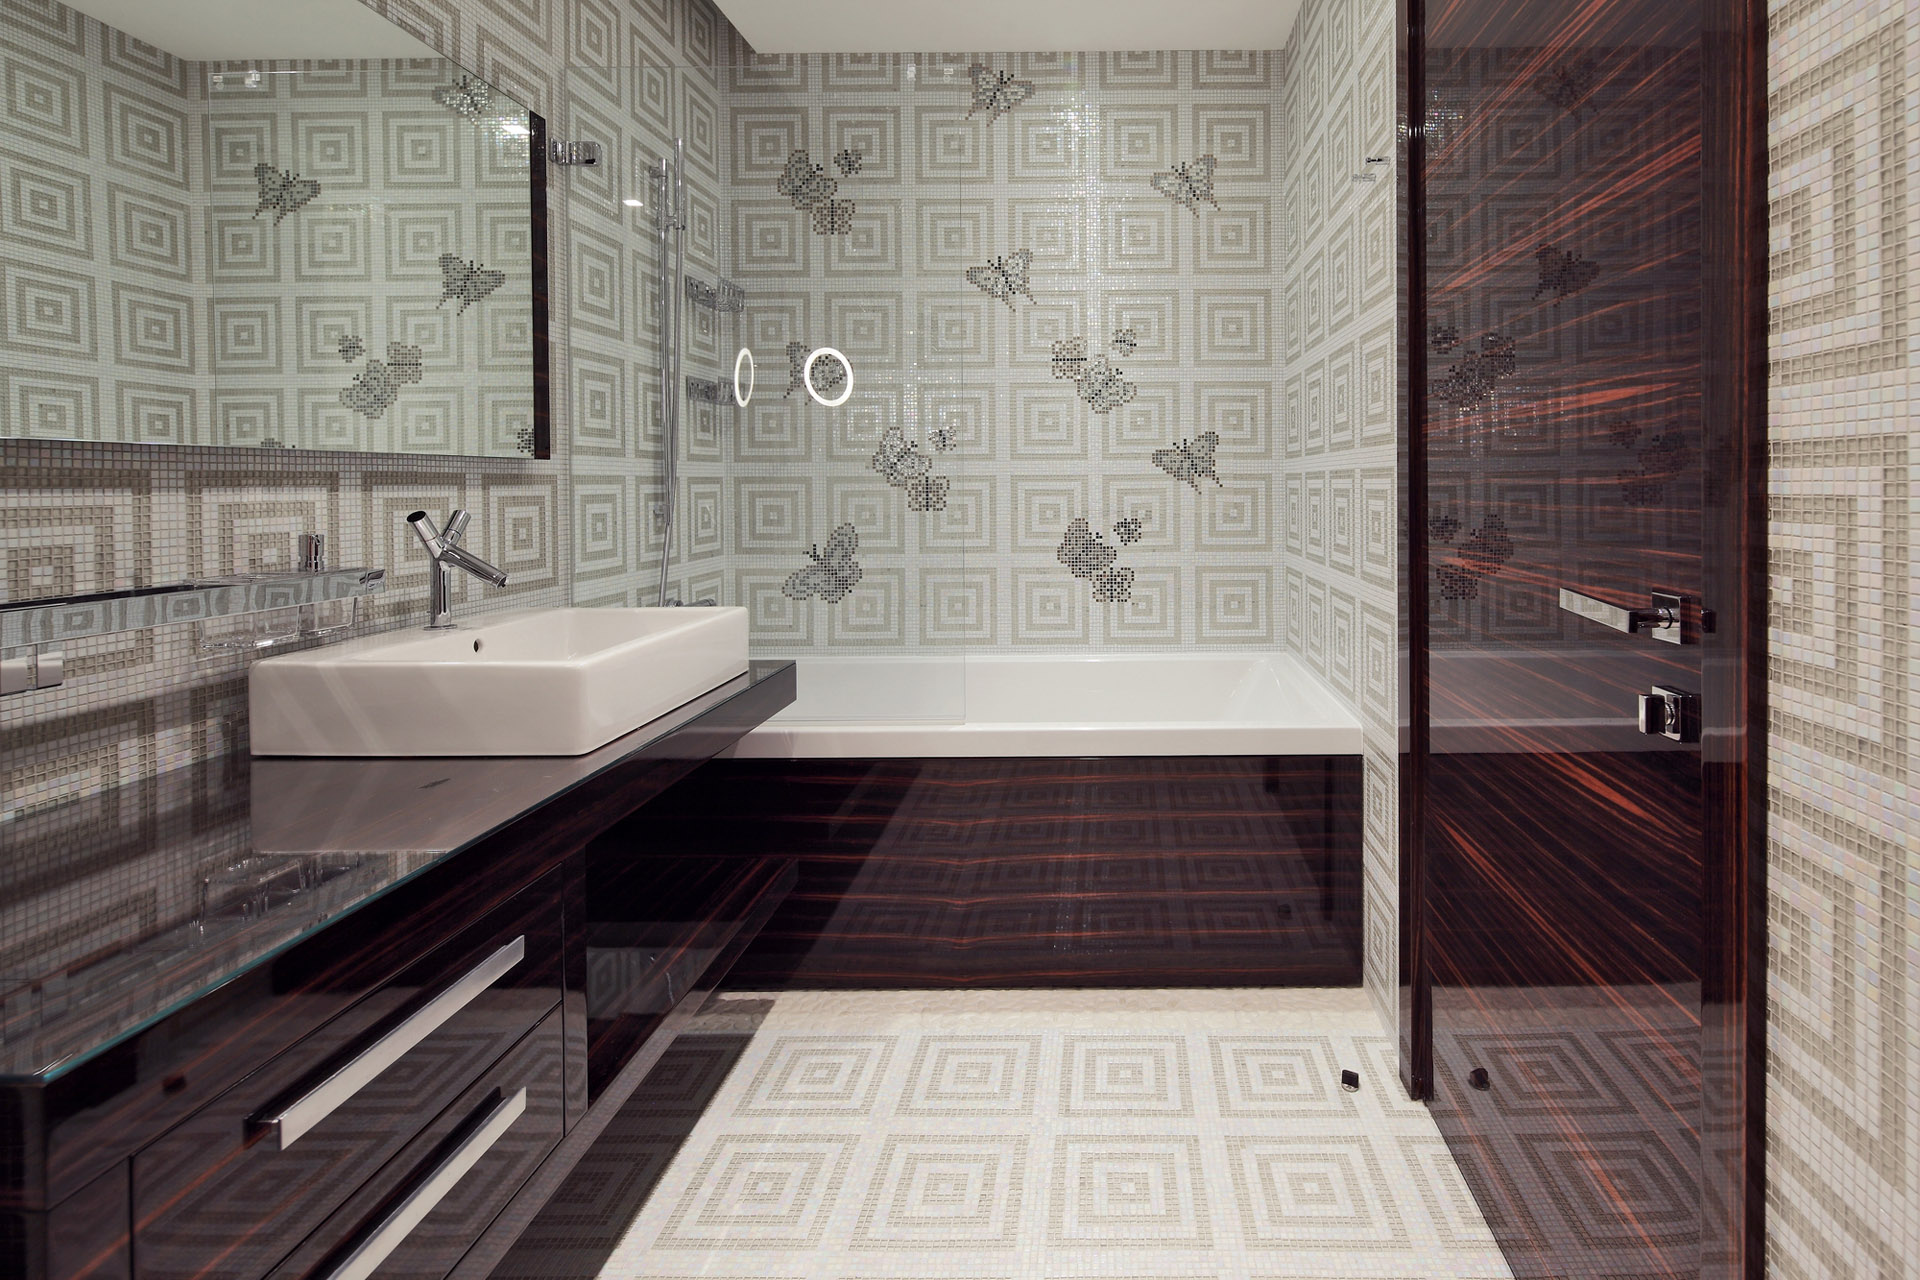 Contemporary bathroom wallpaper home design ideas design for Modern bathroom wallpaper